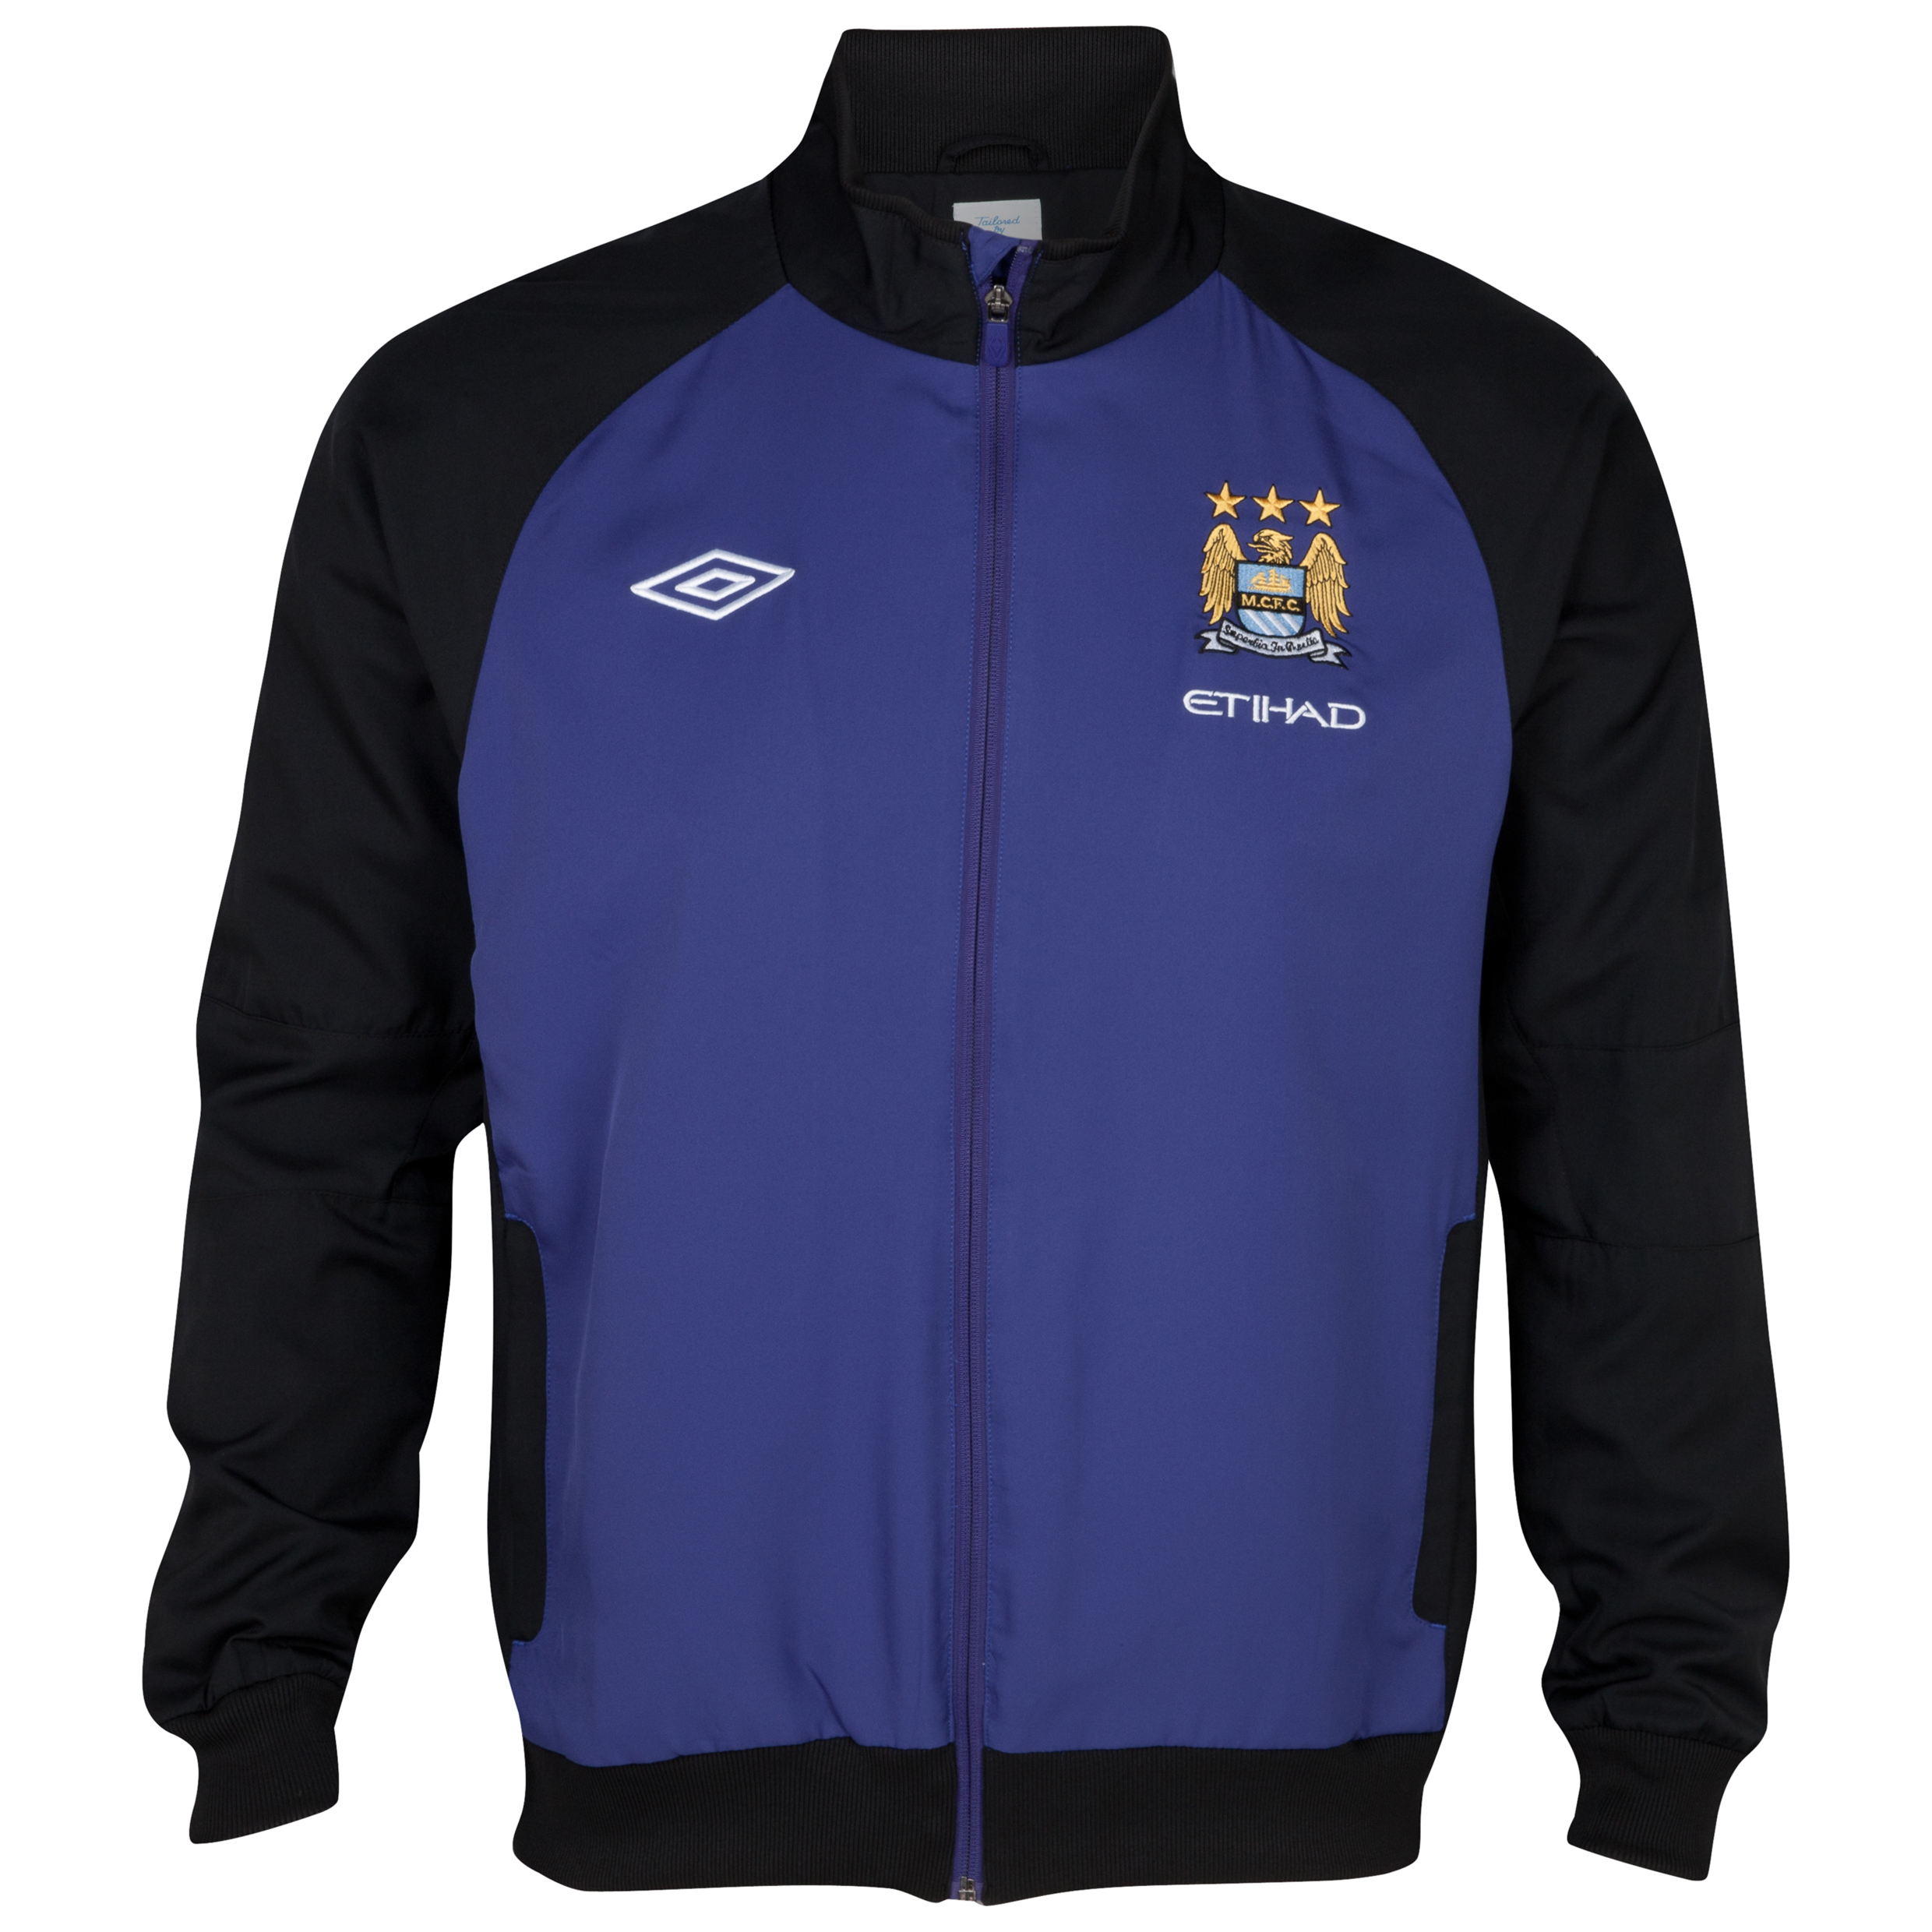 Manchester City Training Woven Jacket - Deep Wisteria / Black